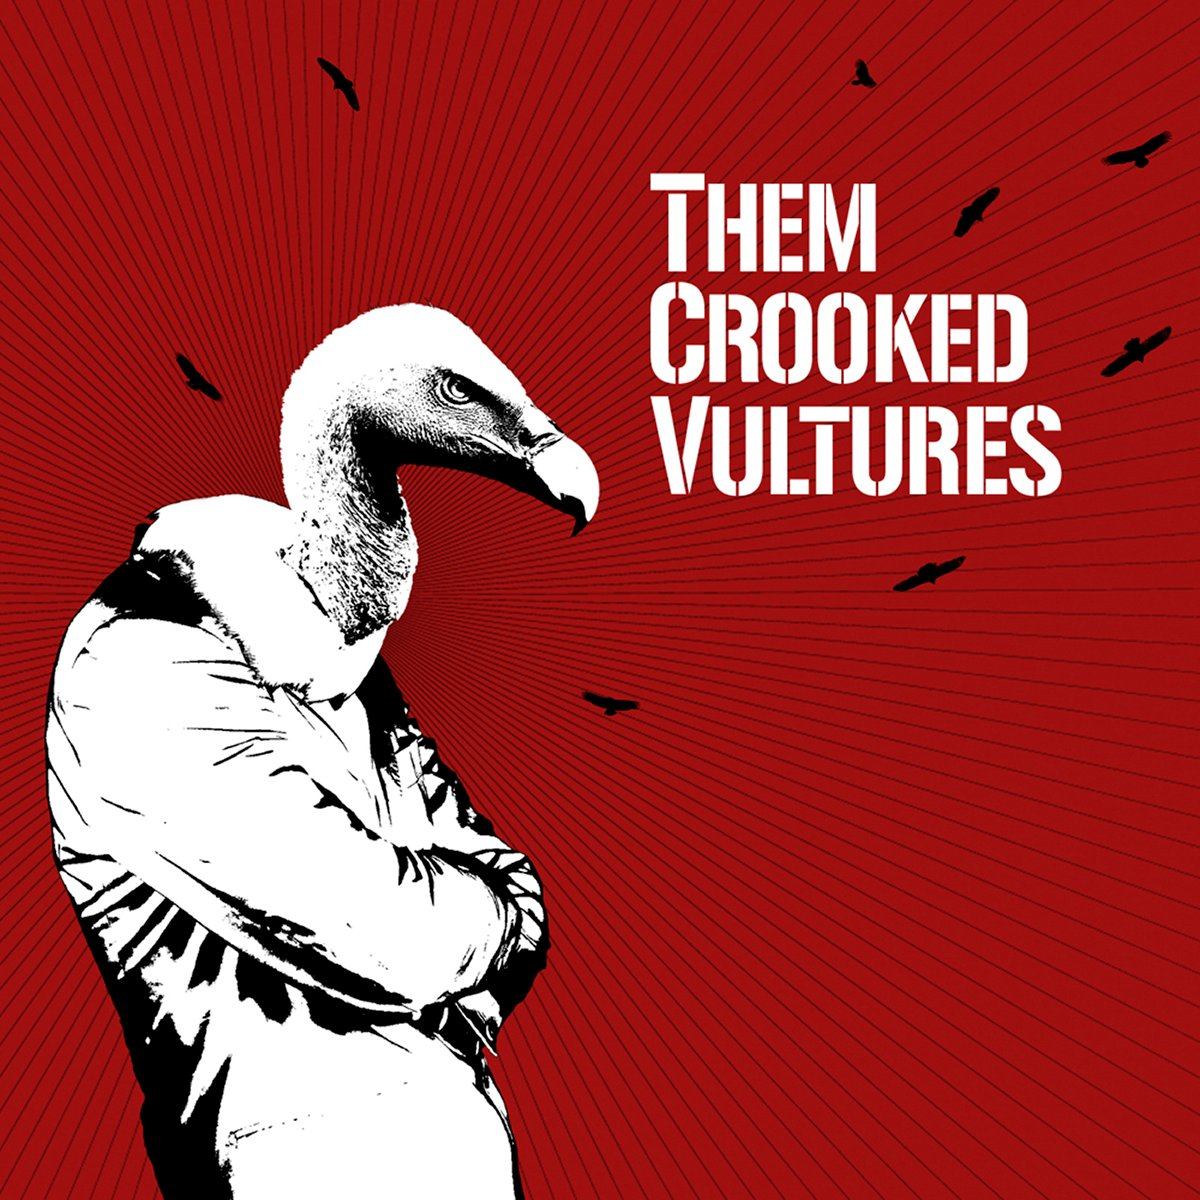 Them Crooked Vultures, Them Crooked Vultures